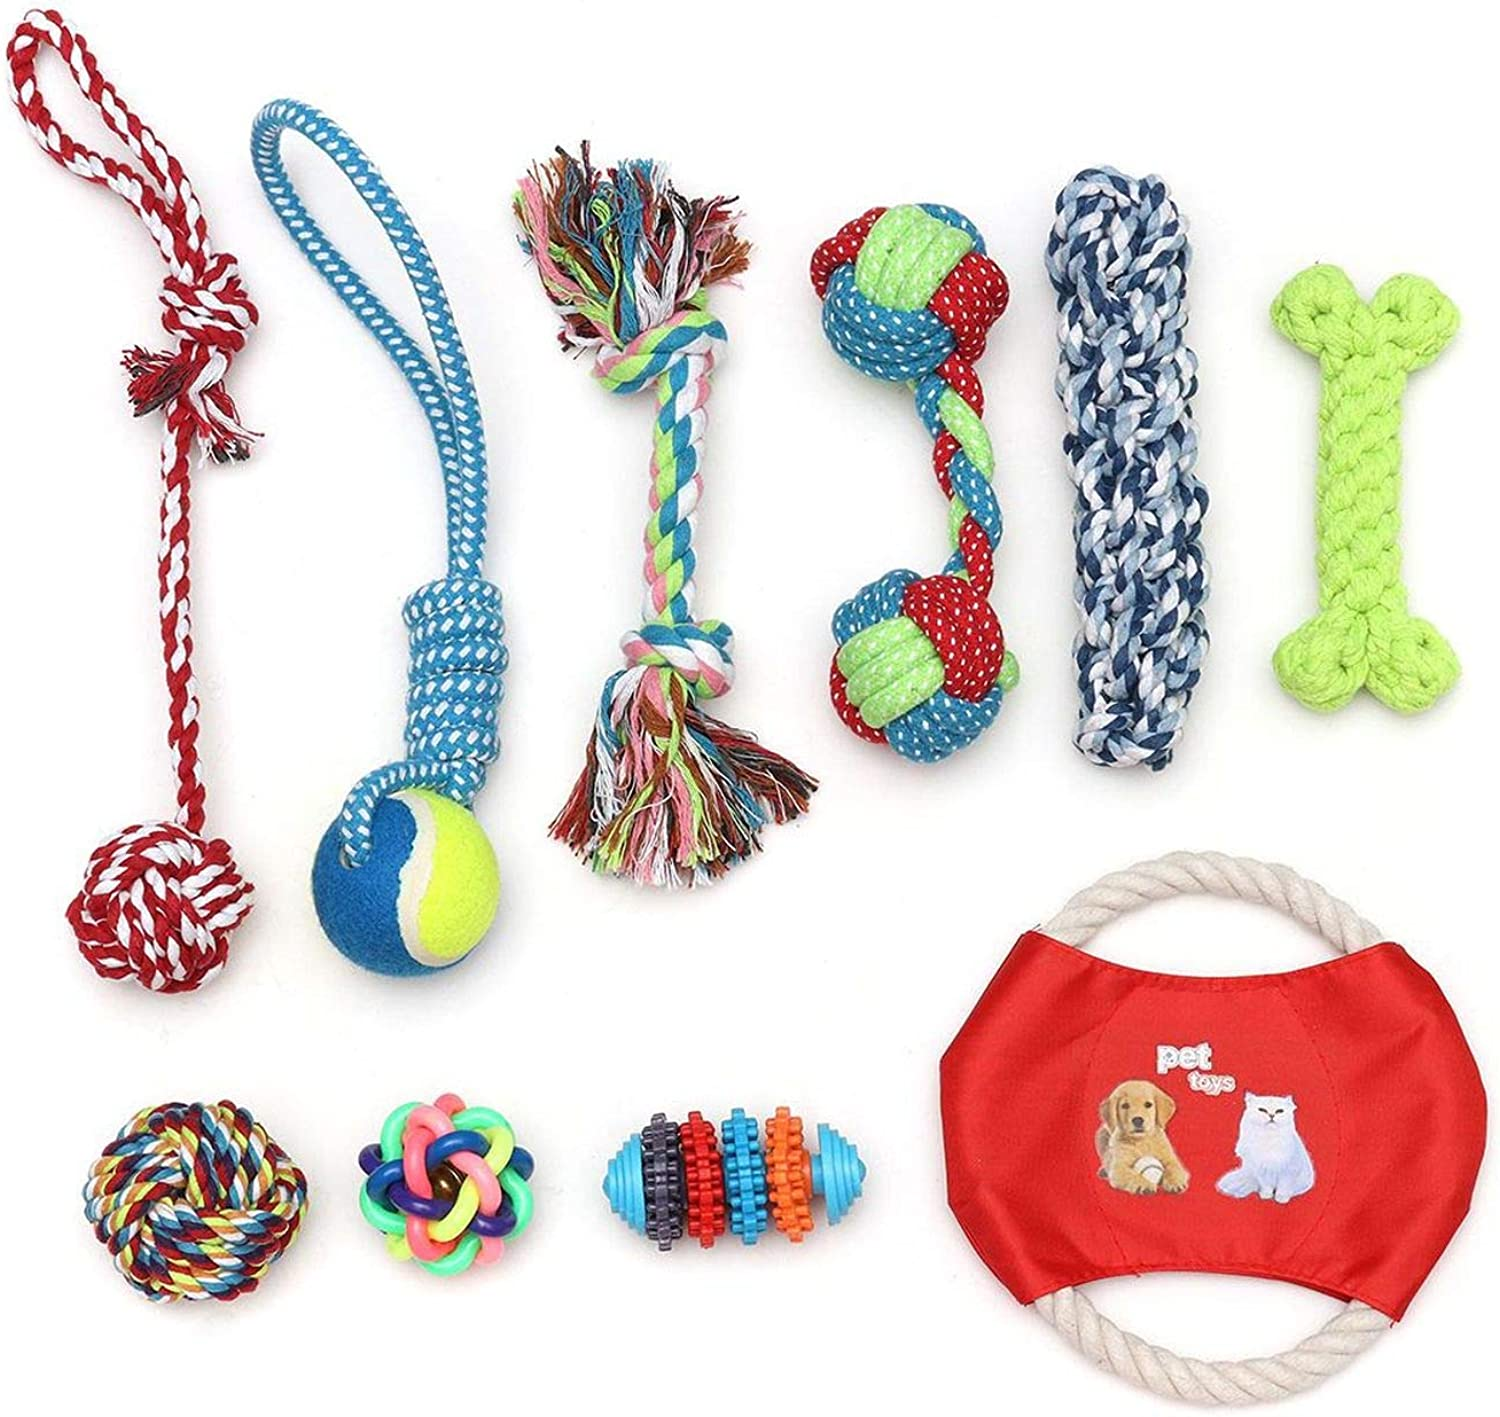 10Pcs Set Cotton Pet Dogs Rope Chewing Toys Durable NonToxic Intelligence Develop Interactive Toy Set Knot Ball Pet Supplies,colorful,S